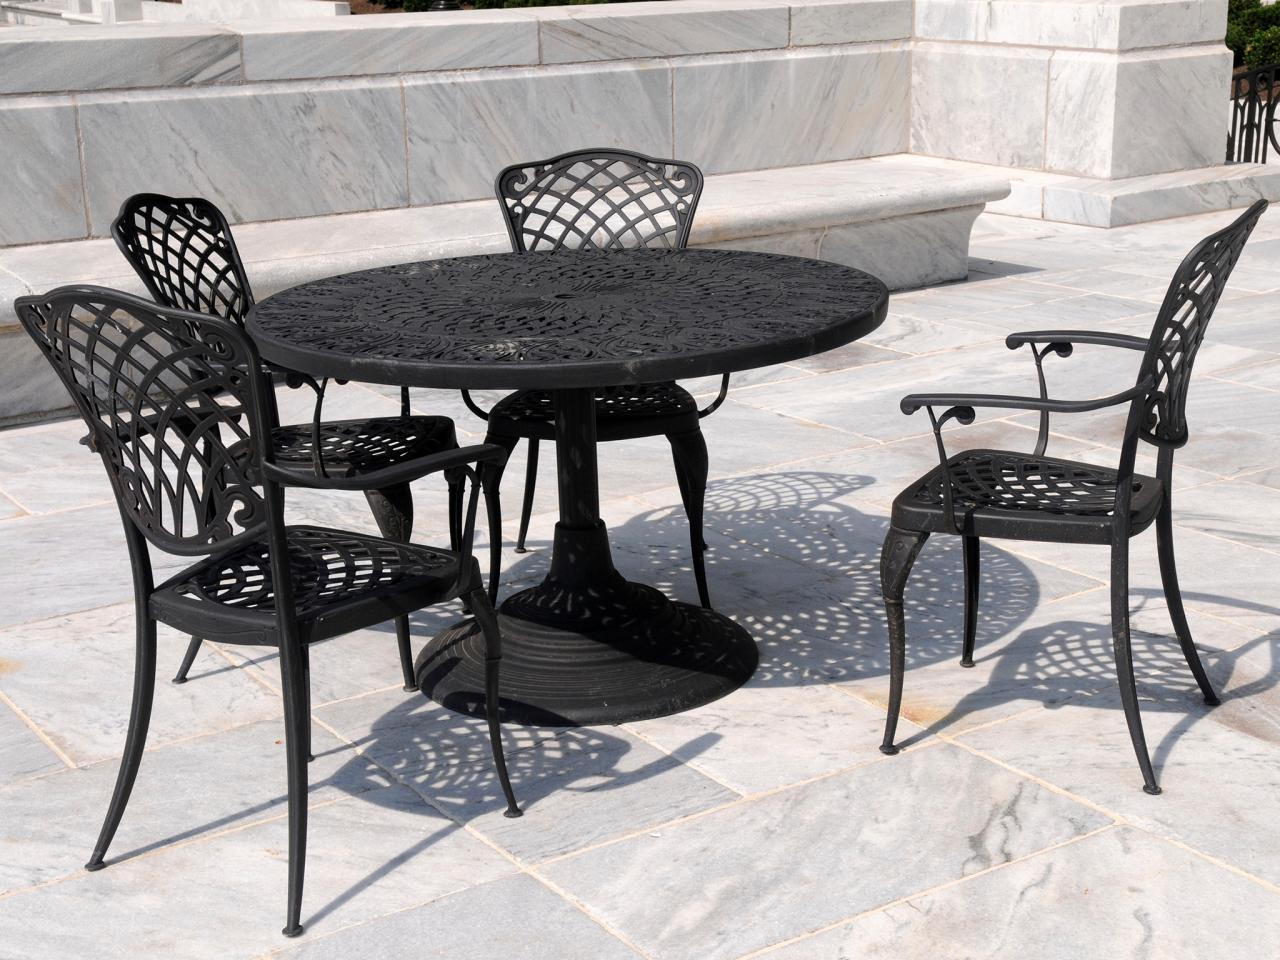 Wrought Iron Patio Furniture & Wrought Iron Patio Furniture | HGTV